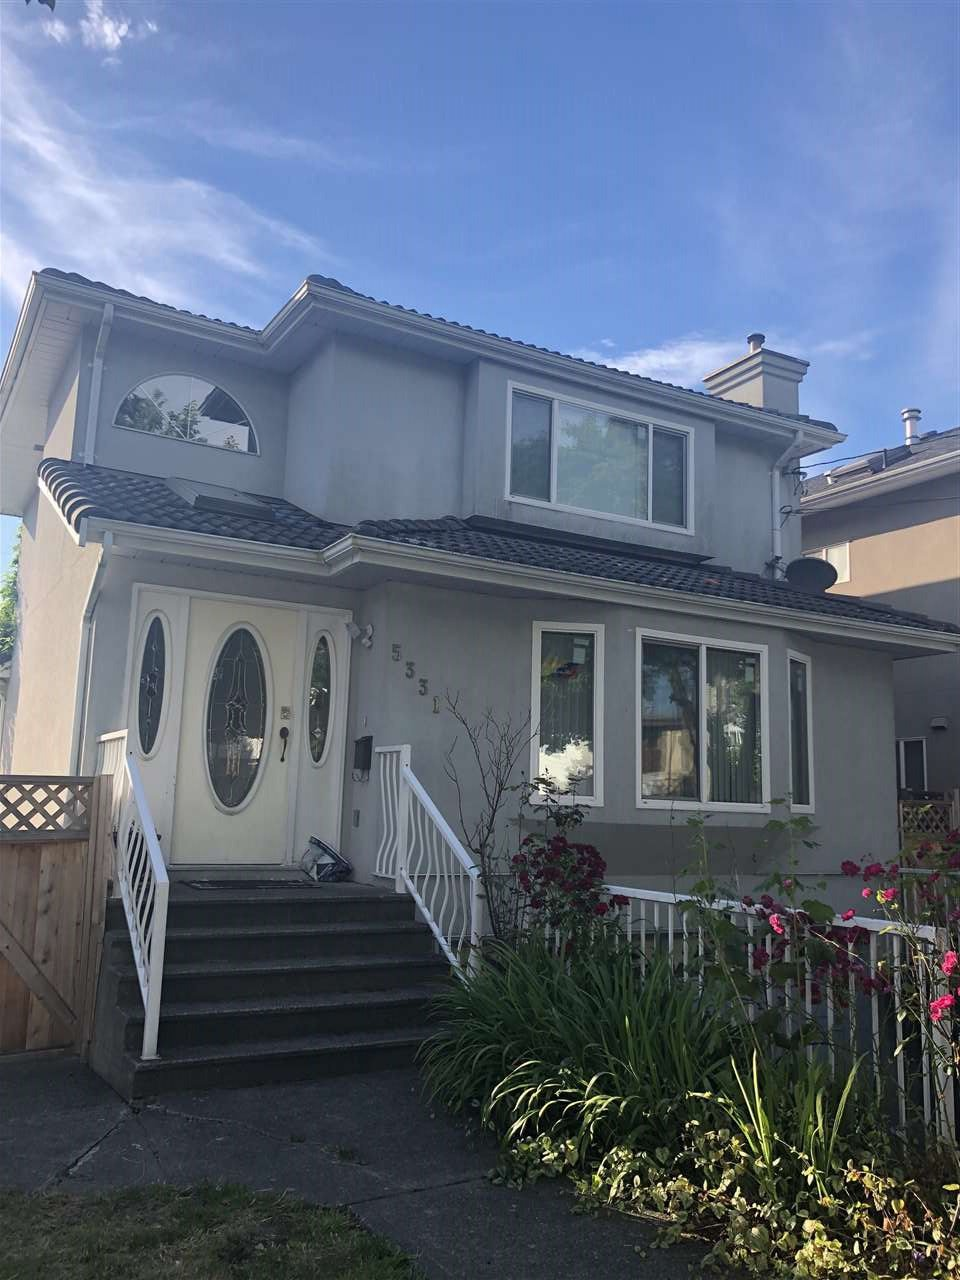 Main Photo: 5331 CECIL Street in Vancouver: Collingwood VE House for sale (Vancouver East)  : MLS®# R2496686